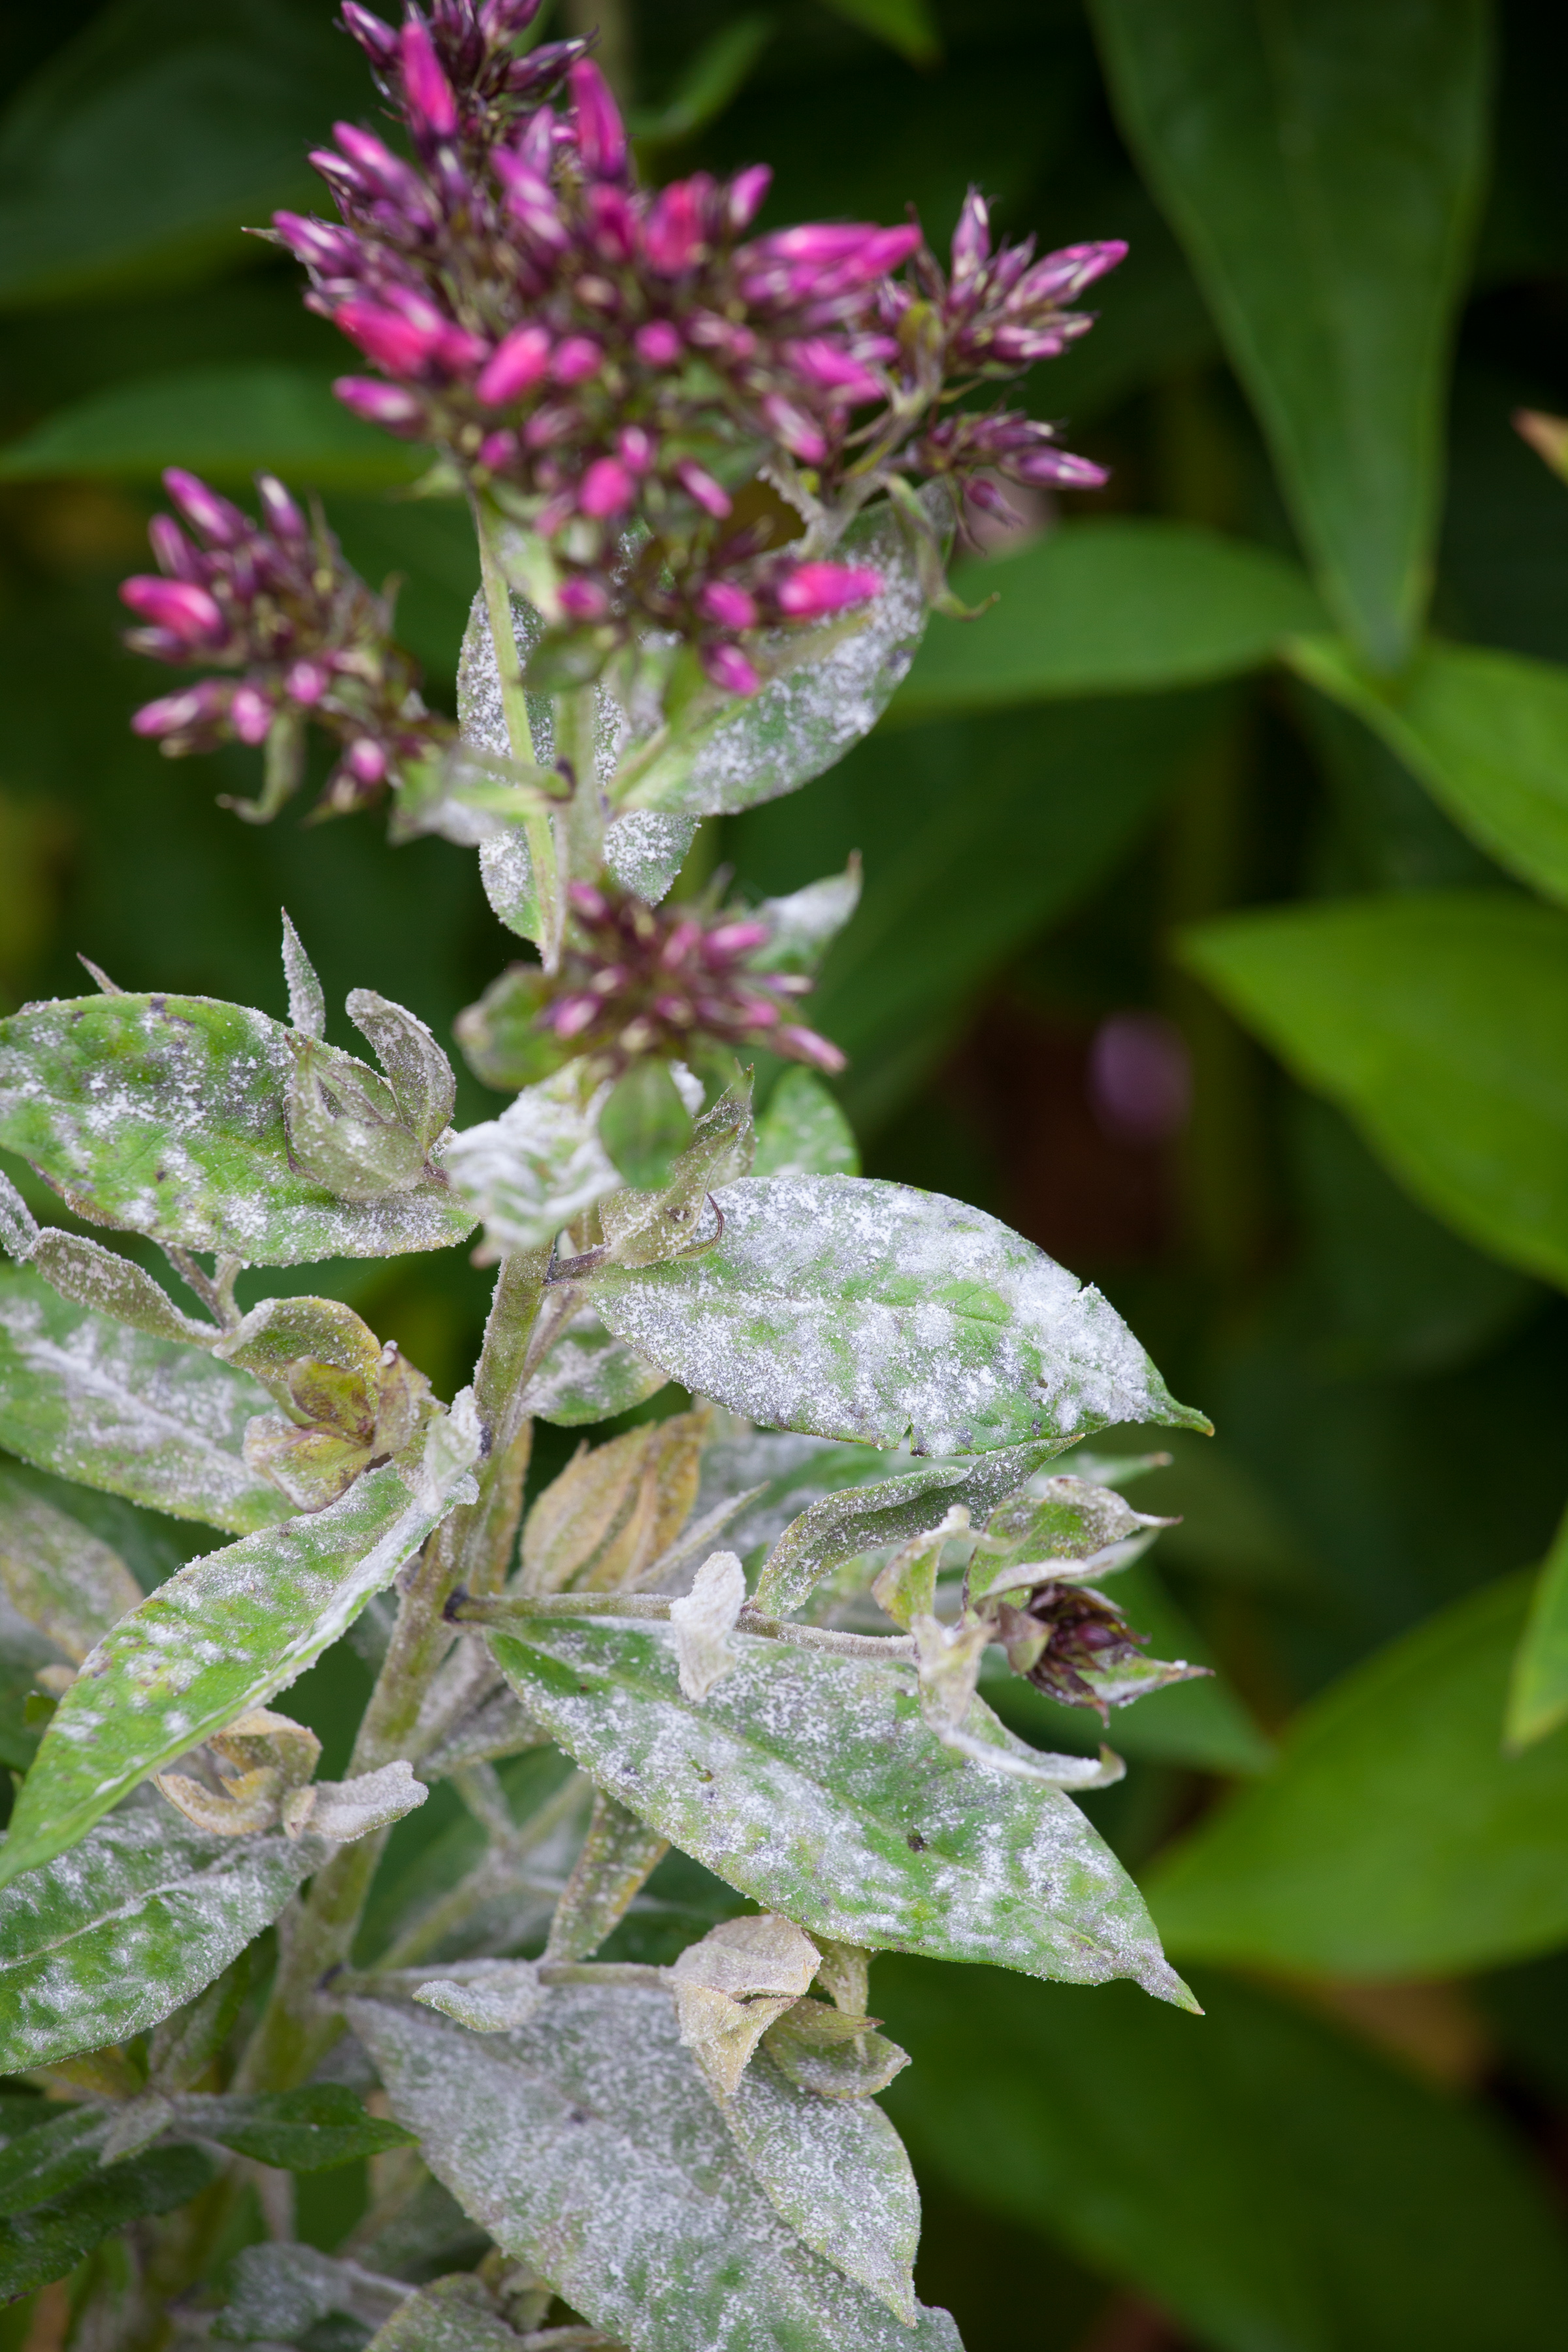 Powdery mildew – Which? Gardening Helpdesk on florida plants with red leaves, house plants with bronze leaves, perennial plants with purple leaves, house plants with small leaves, wandering jew with fuzzy leaves, poisonous plants with purple leaves, house with red flowers, house plant rubber plant, house plants with waxy red blooms, house plant purple heart, purple house plant fuzzy leaves, house plants with dark red leaves, house plants with colorful leaves, house plants and their names, olive tree green leaves, house plants with shiny leaves, tomato plants with purple leaves, purple foliage plants with leaves, house plants with light green leaves, house plants with long green leaves,